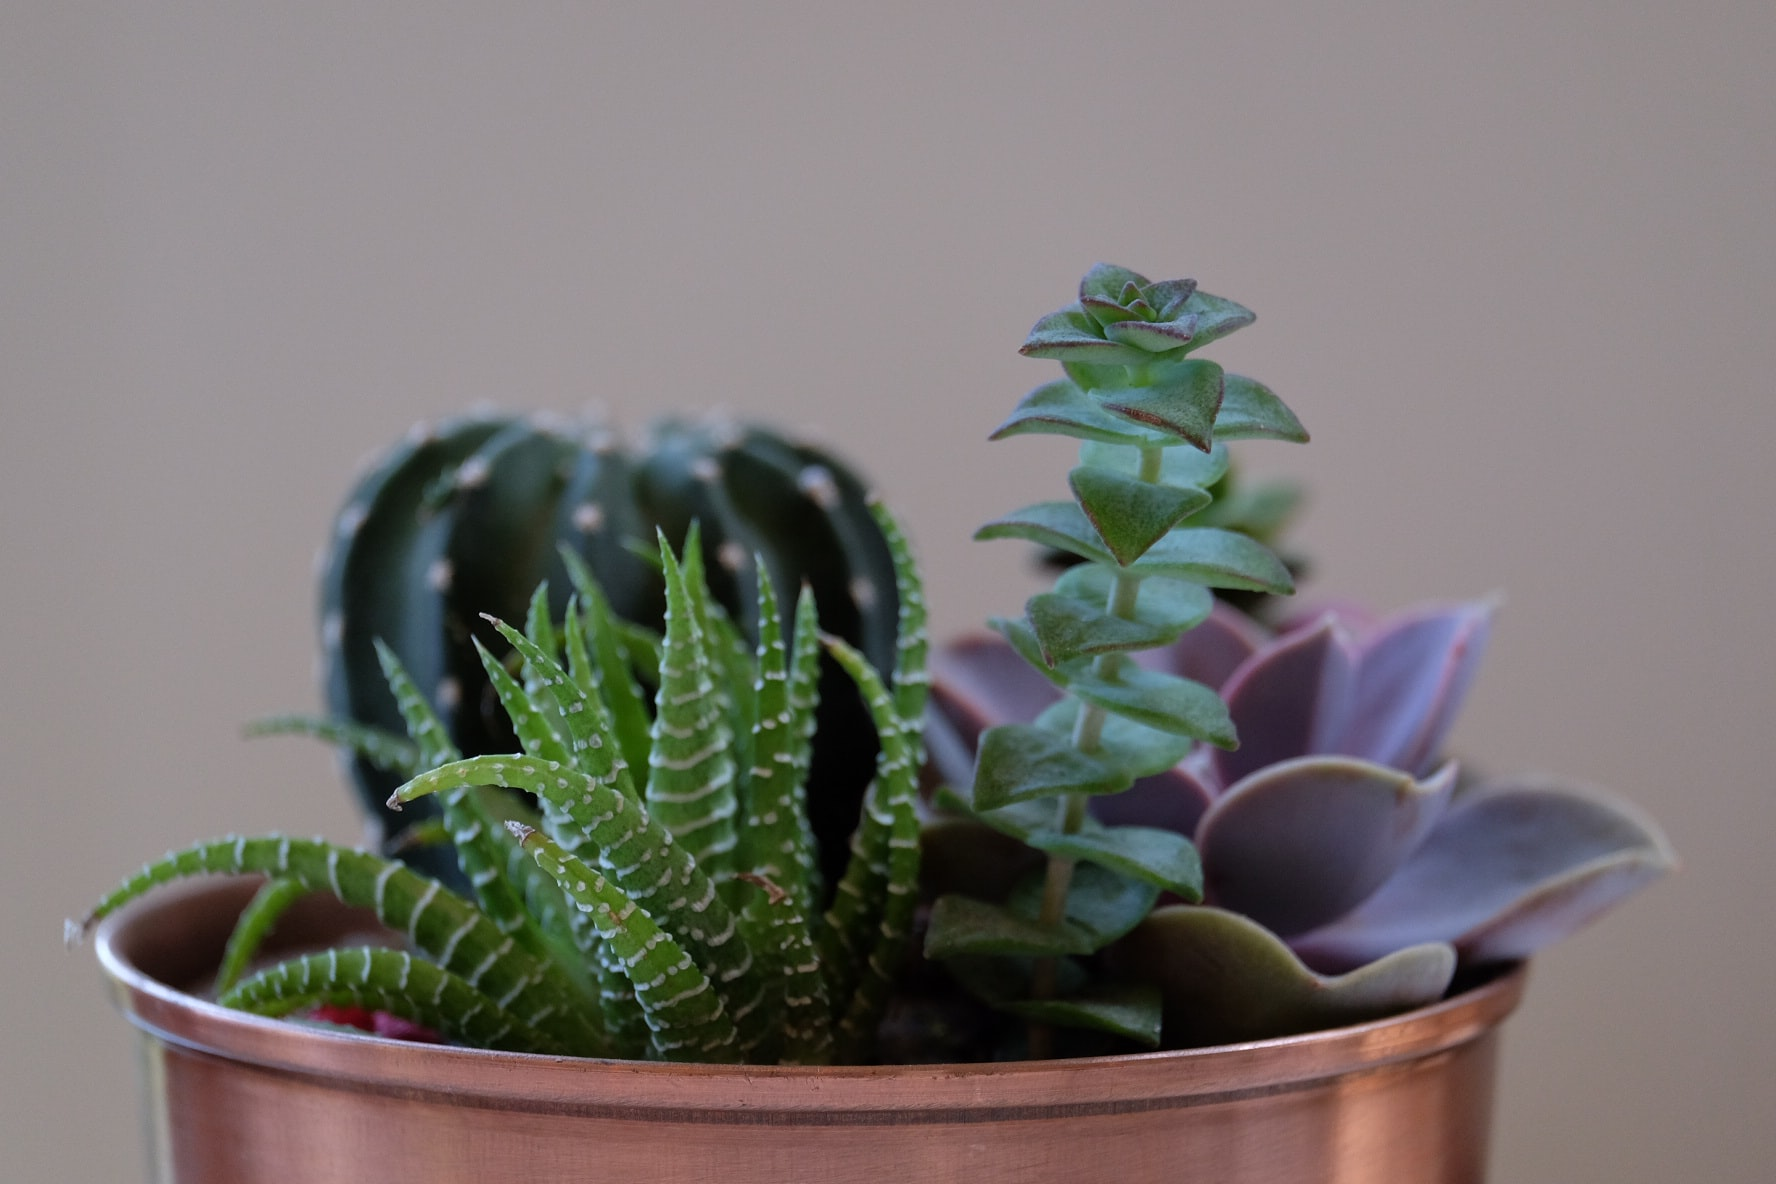 Cactus and other succulent plants in a small copper pot